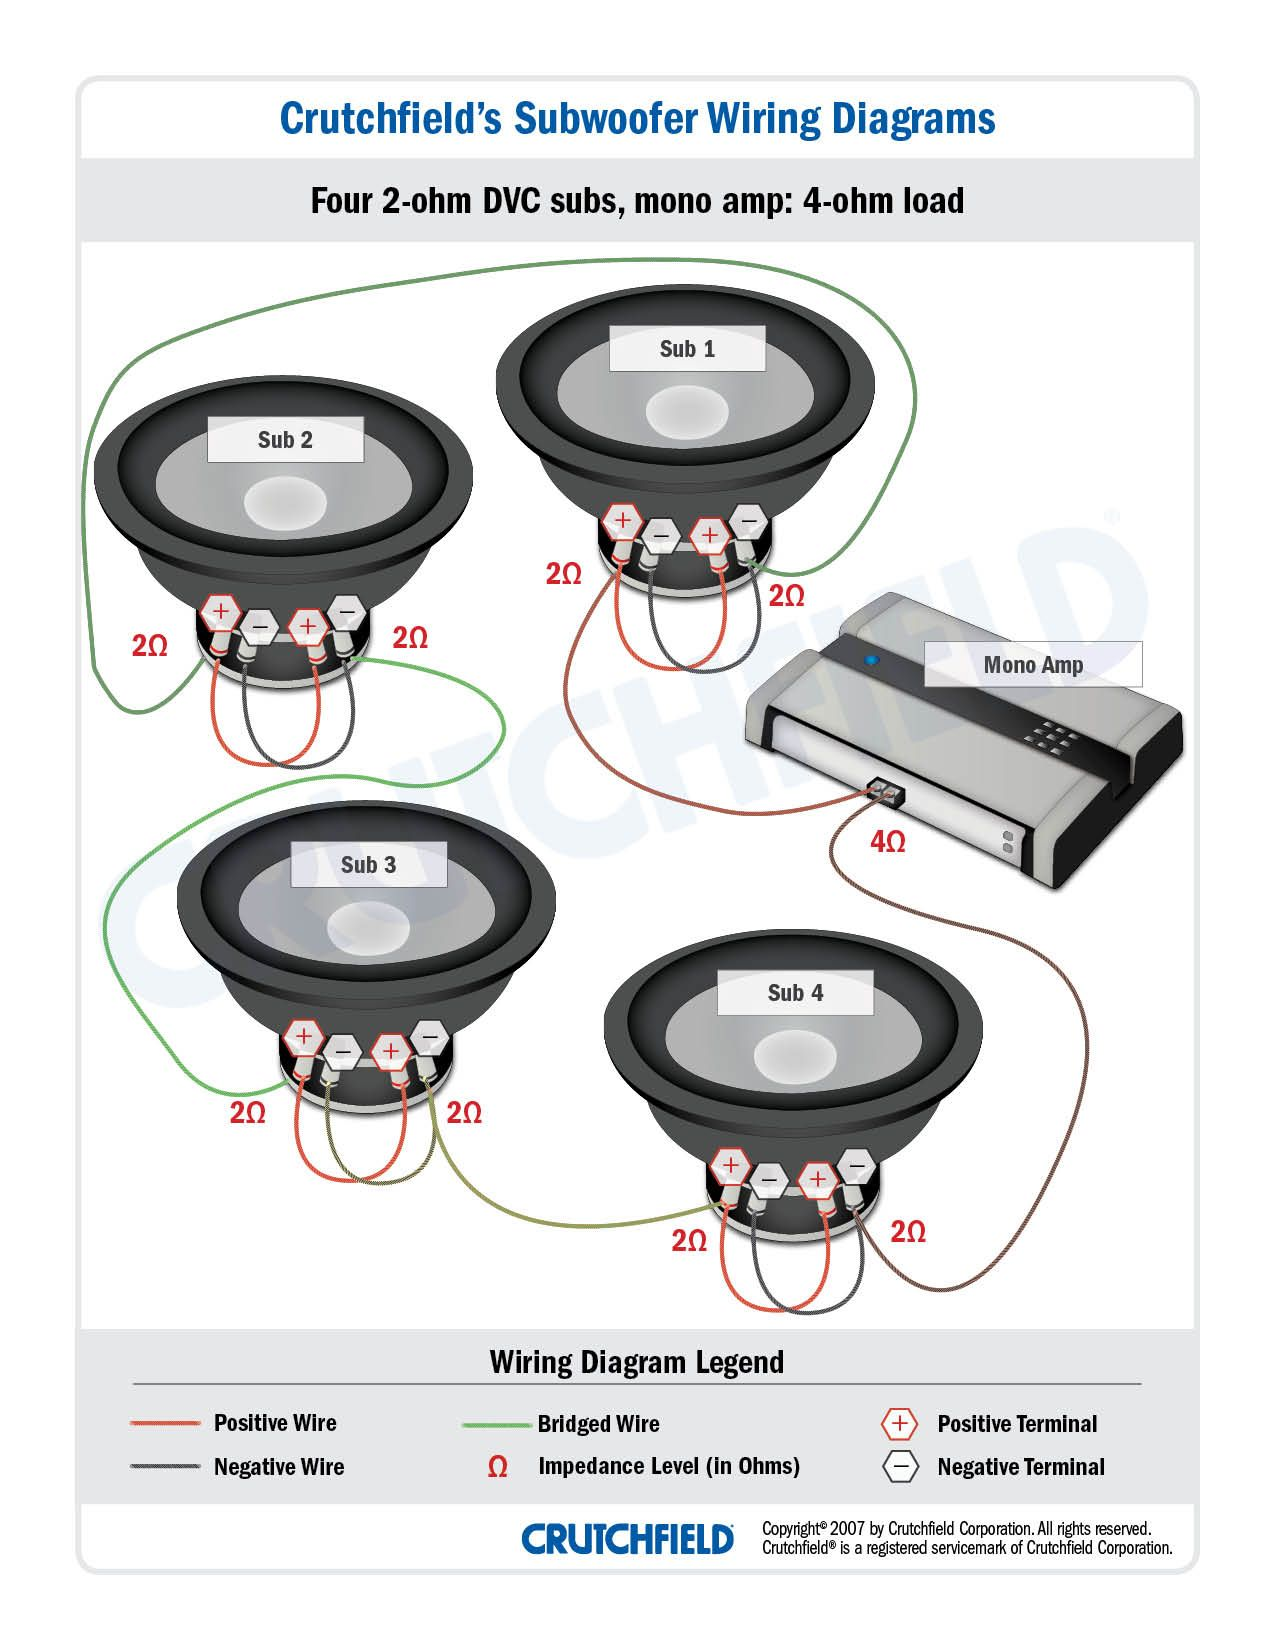 ee61391344572b8f1df2c663a0776c7e top 10 subwoofer wiring diagram free download 4 dvc 2 ohm mono top Dual Voice Coil Wiring at cos-gaming.co